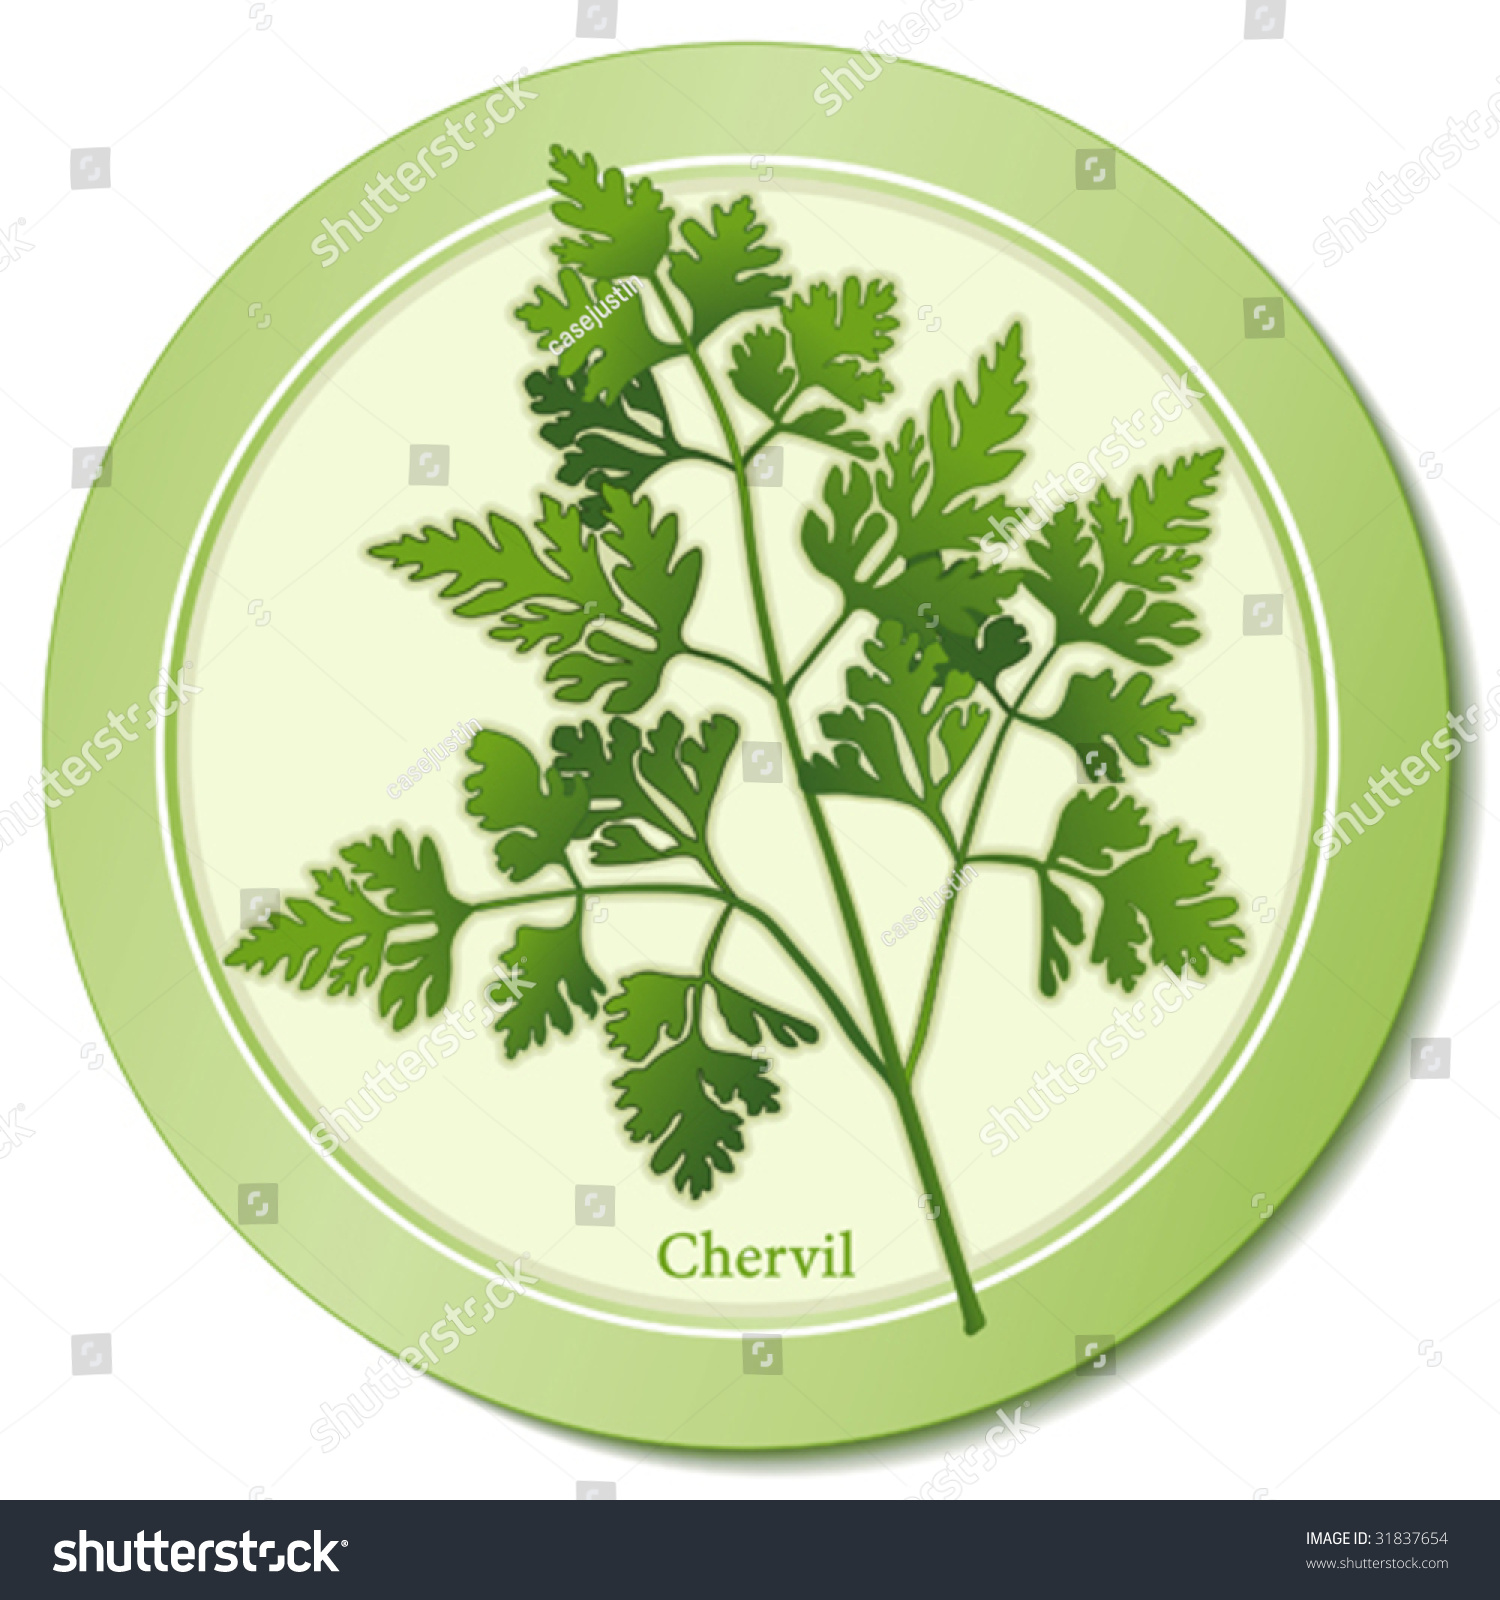 Acacia Stock Photos Royalty Free Images Amp Vectors Shutterstock - Chervil herb delicate lacy leaves anise taste aroma to flavor fish